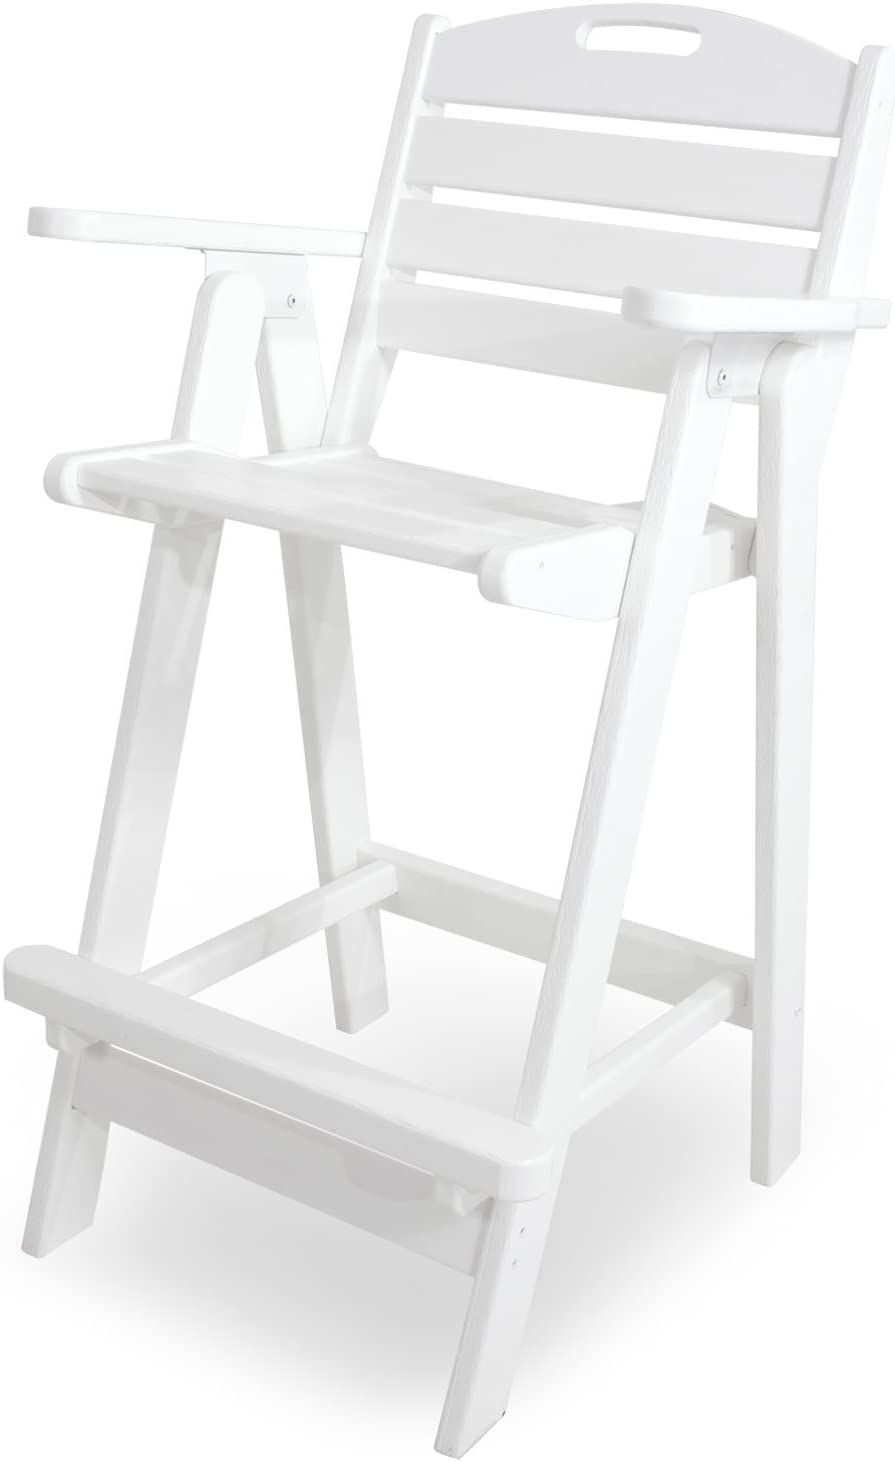 B001VNCJMW POLYWOOD NCB46WH Nautical Bar Chair, White 51vNwhpA0GL